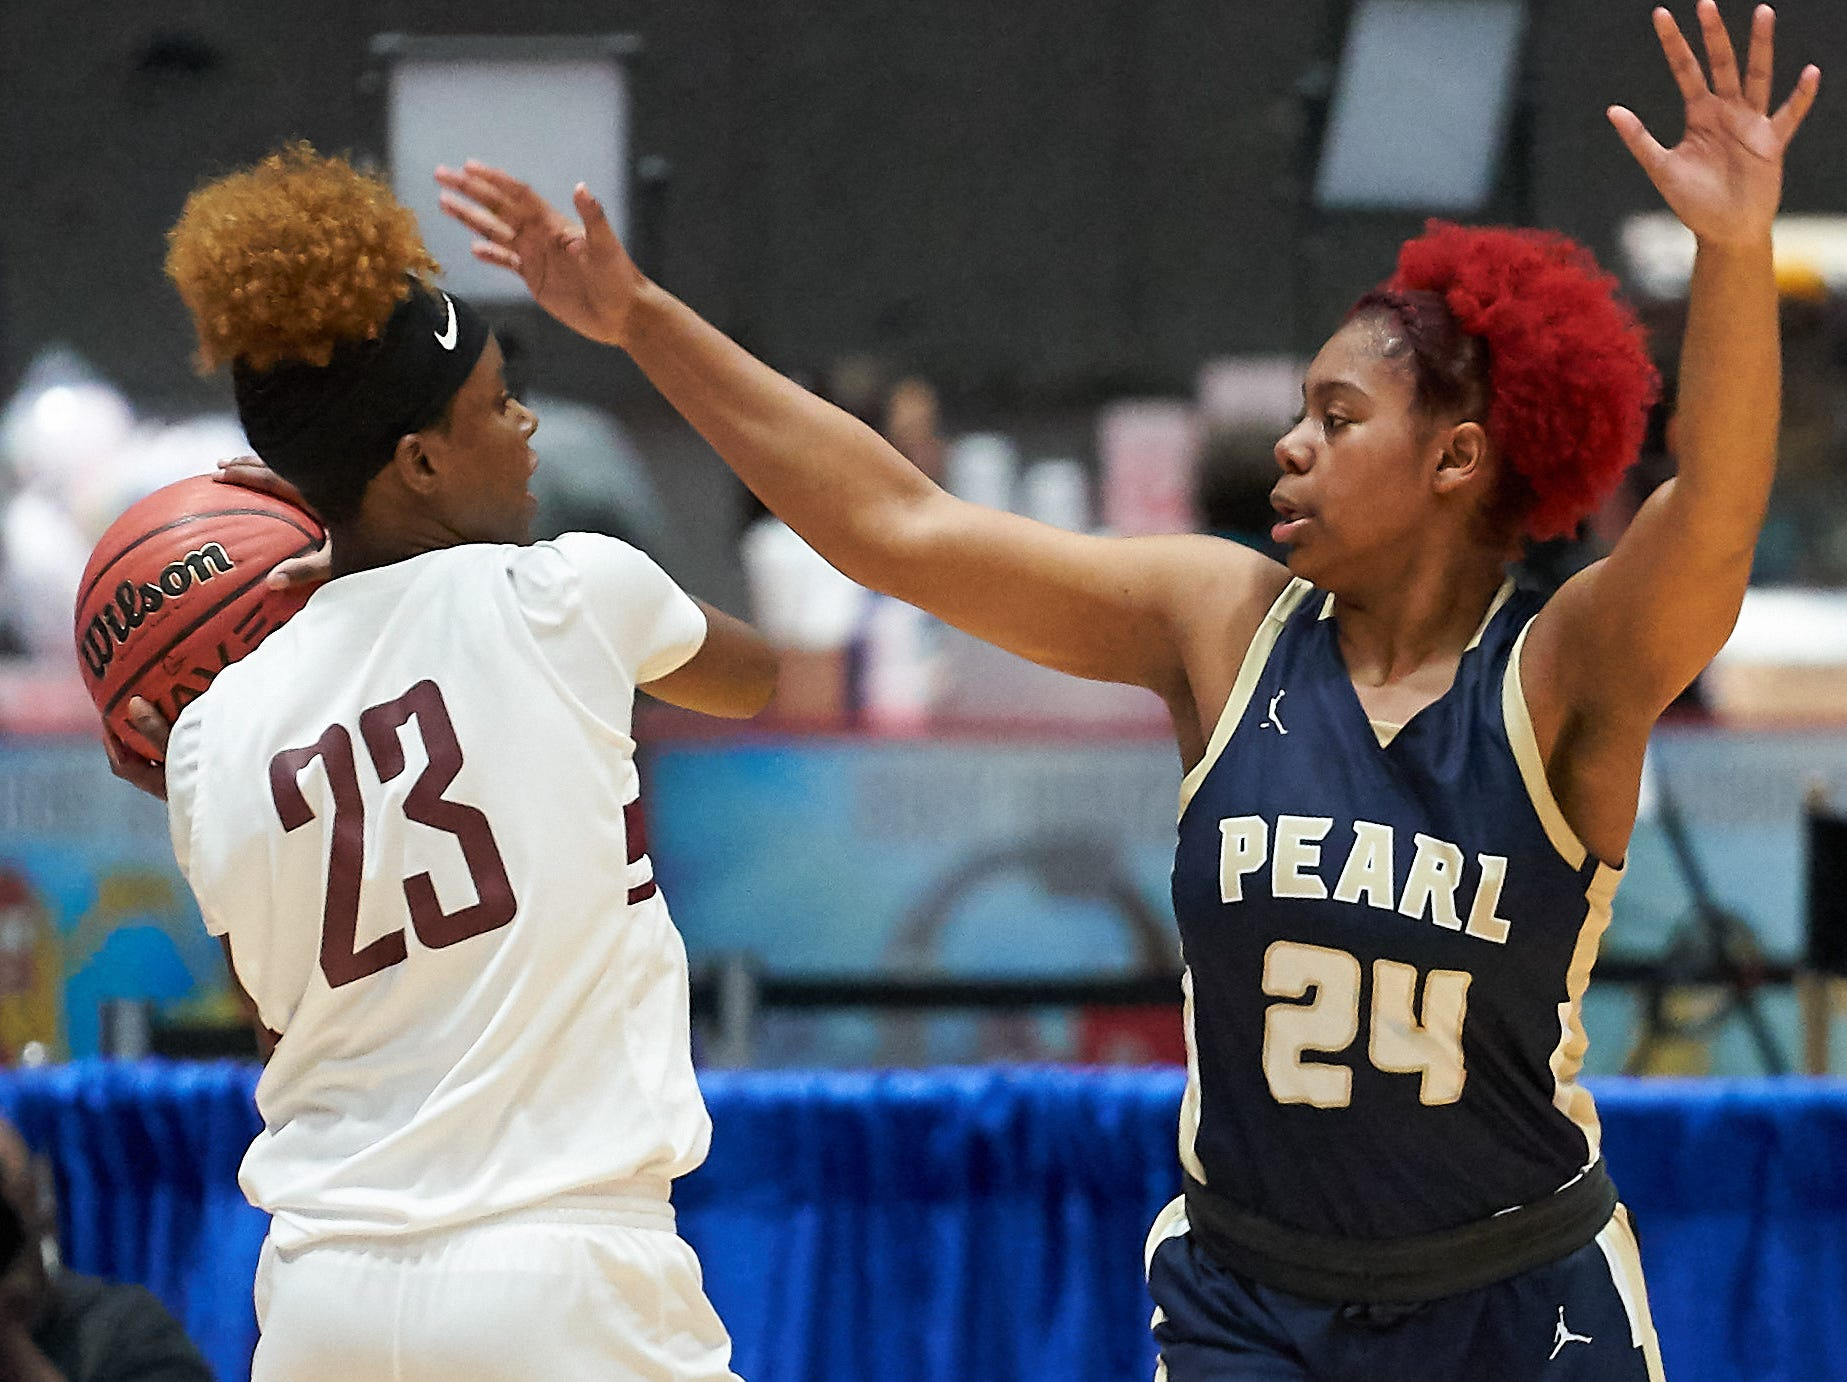 Pearl's Jade Miles (24) defends against Terry's (23) Kayla Fisher (23) during the MHSAA 6A Girls Basketball Championship Finals held at the Mississippi Coliseum in Jackson, MS, Saturday March 9th, 2019.(Bob Smith)